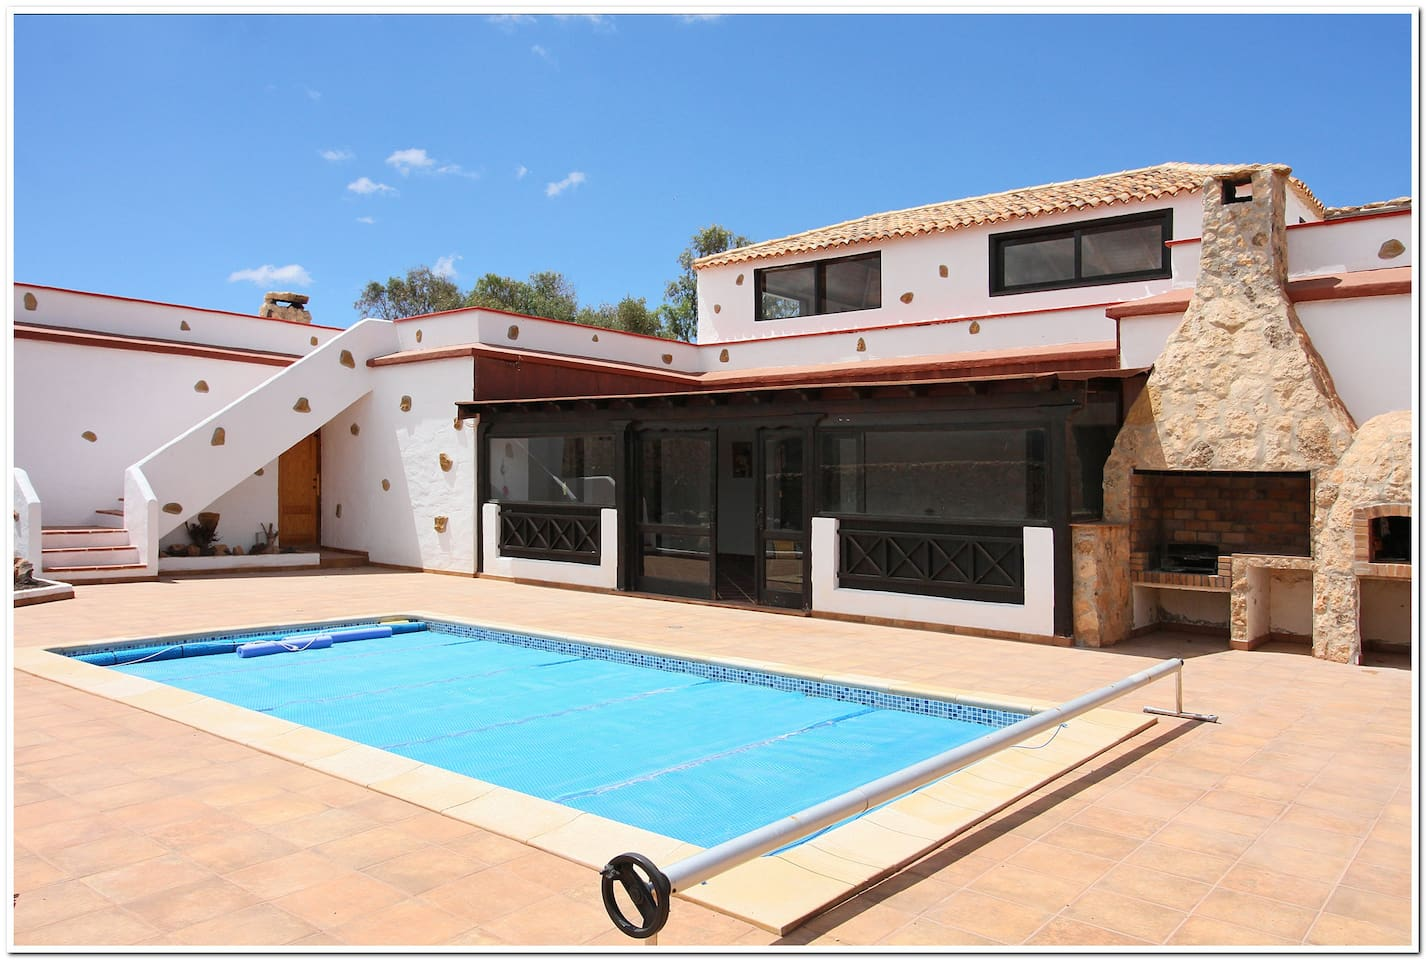 Heated swimming pool, lots of space to enjoy the sun